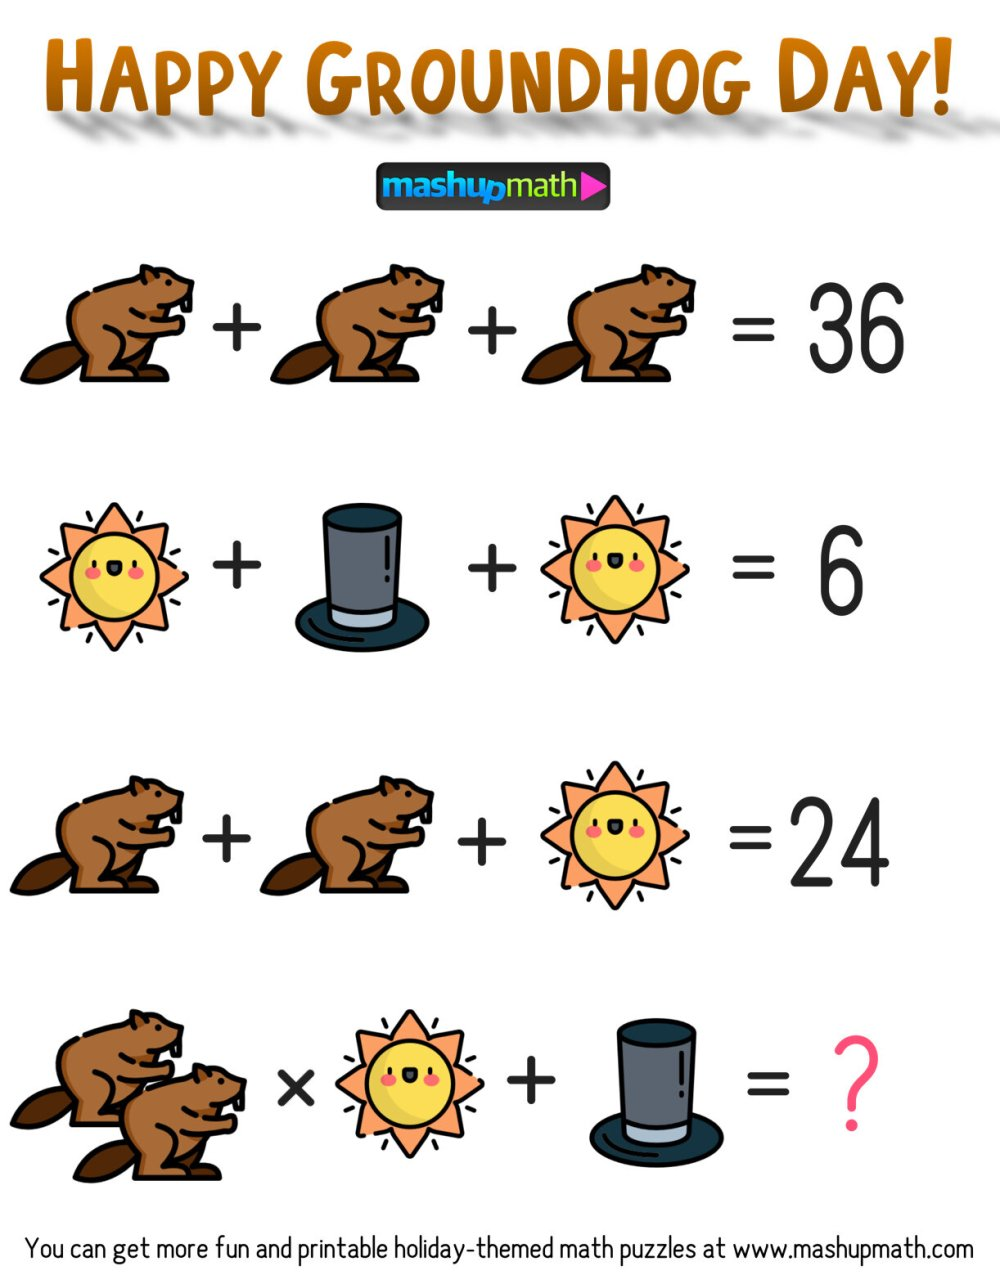 medium resolution of Free Groundhog Day Math Puzzle for Grades 3-8 — Mashup Math